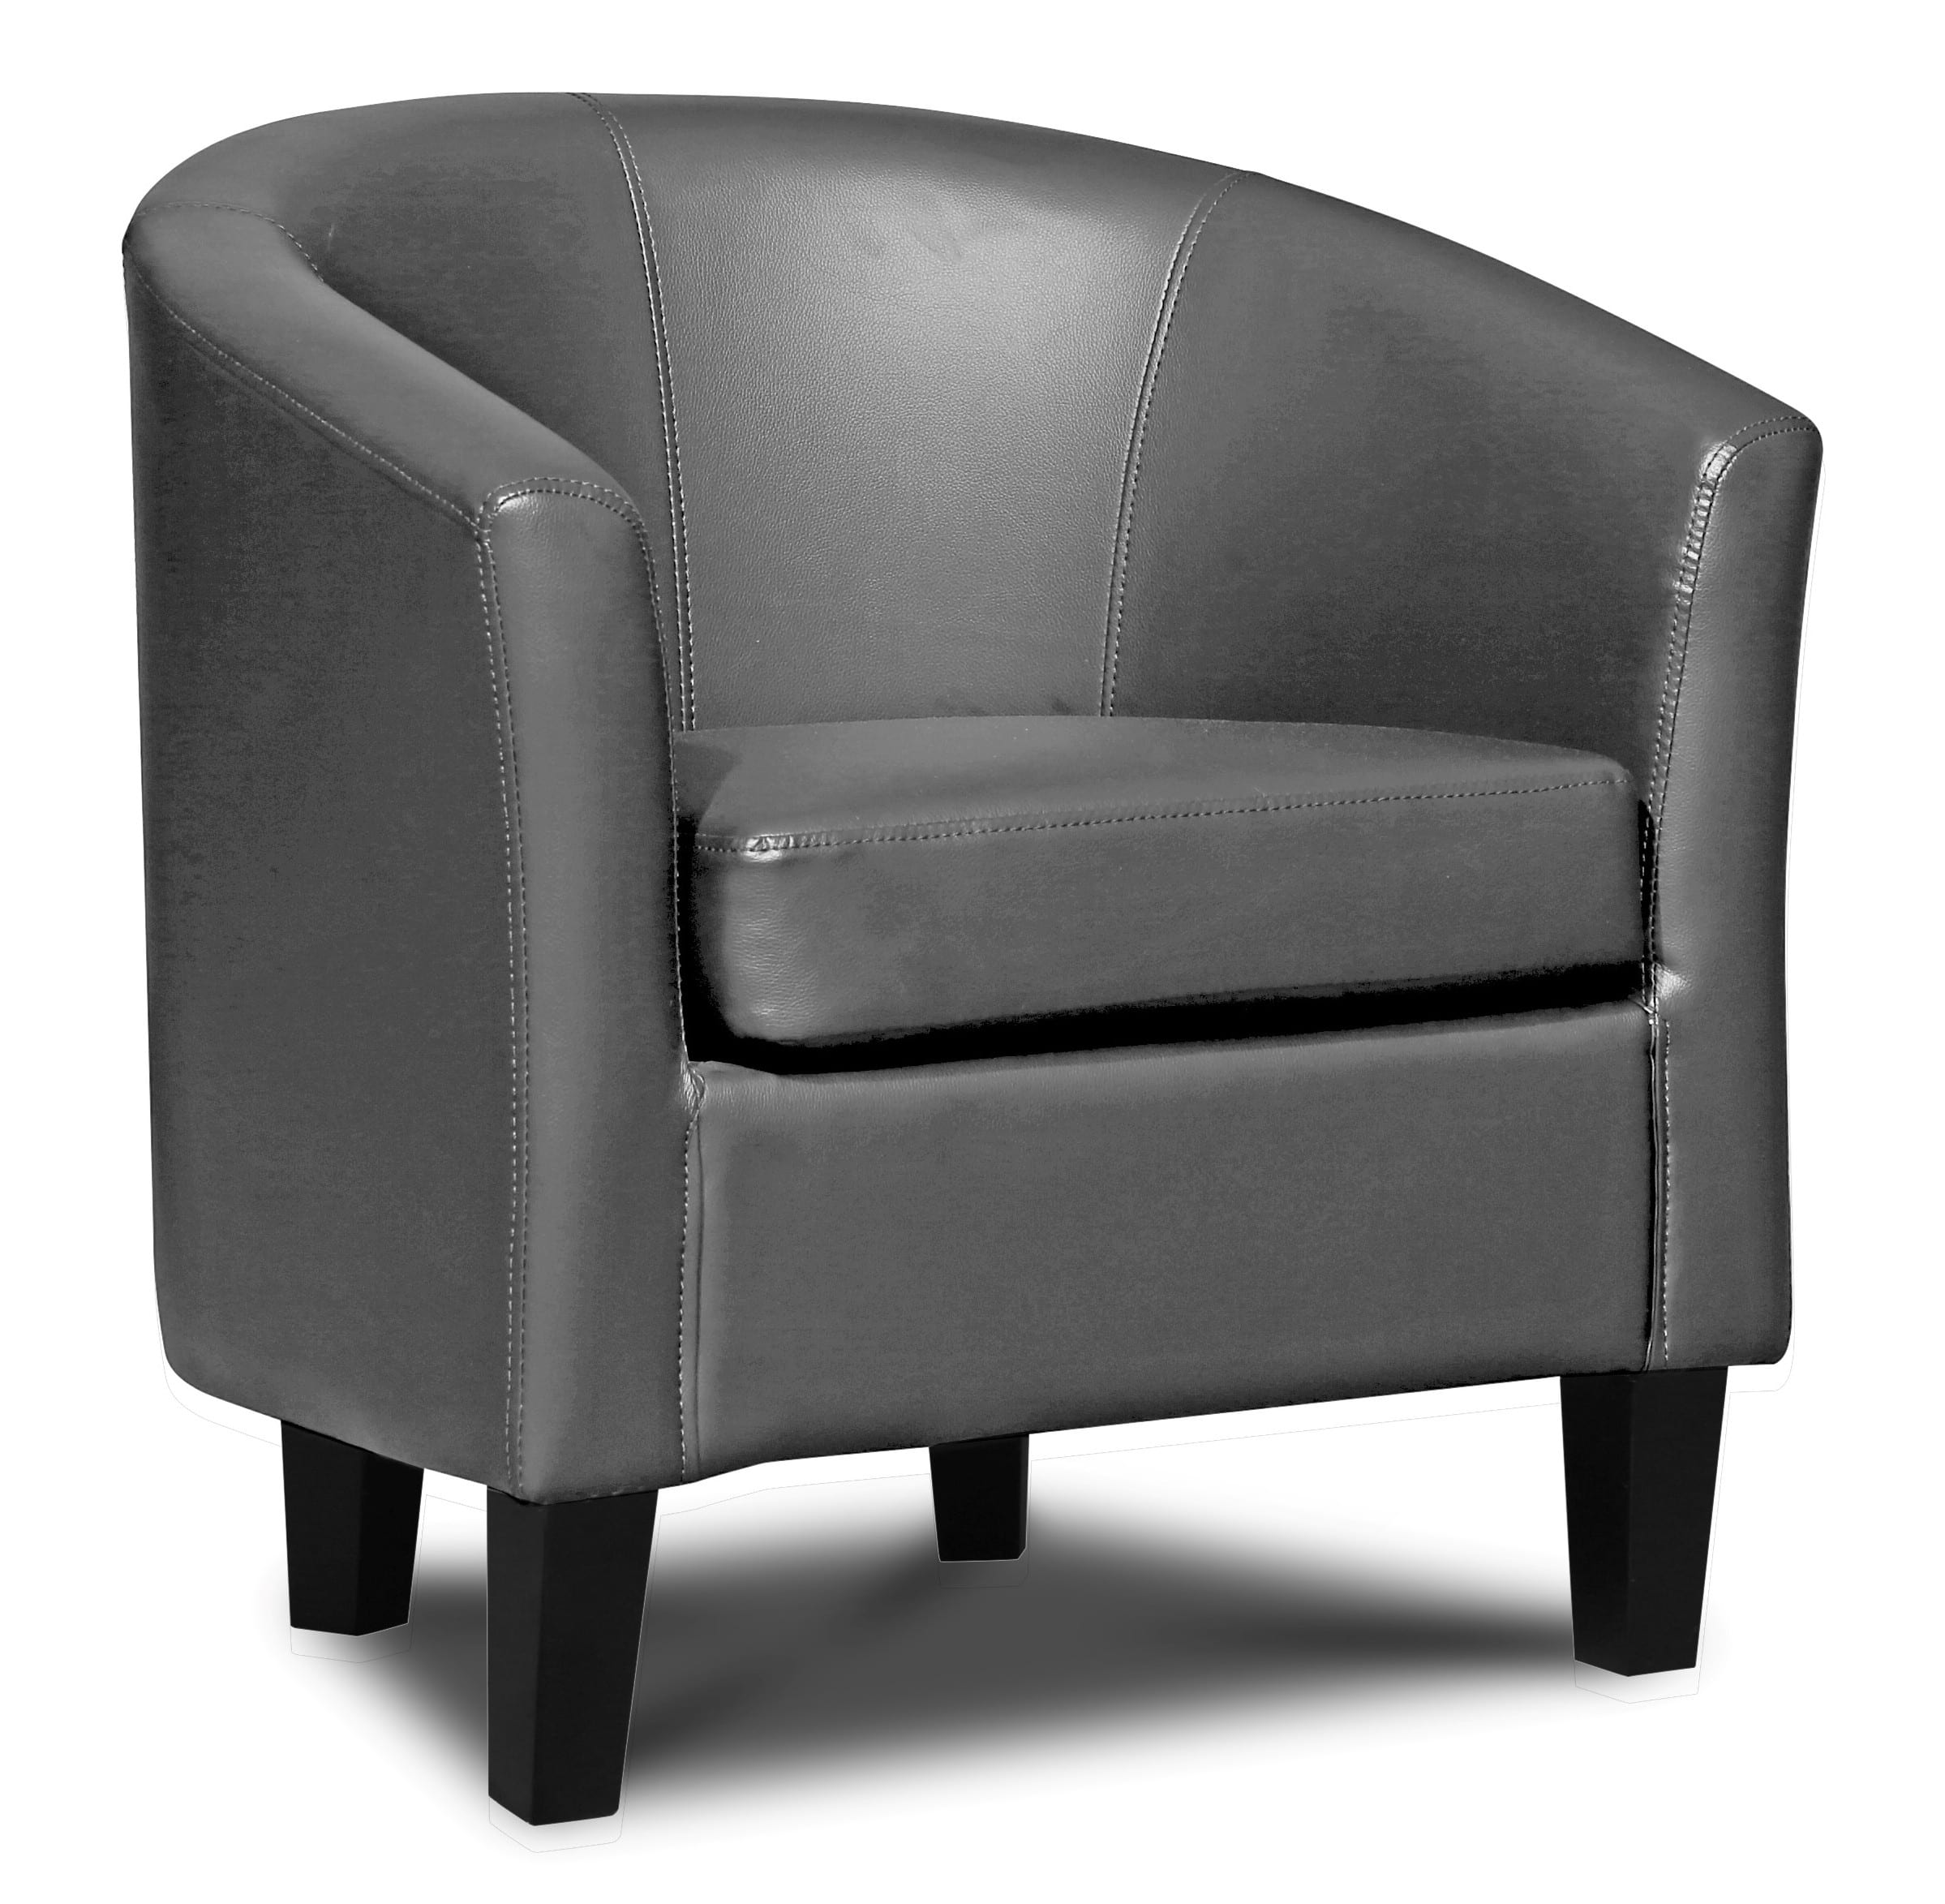 Merveilleux Faux Leather Tub Chair U2013 Grey